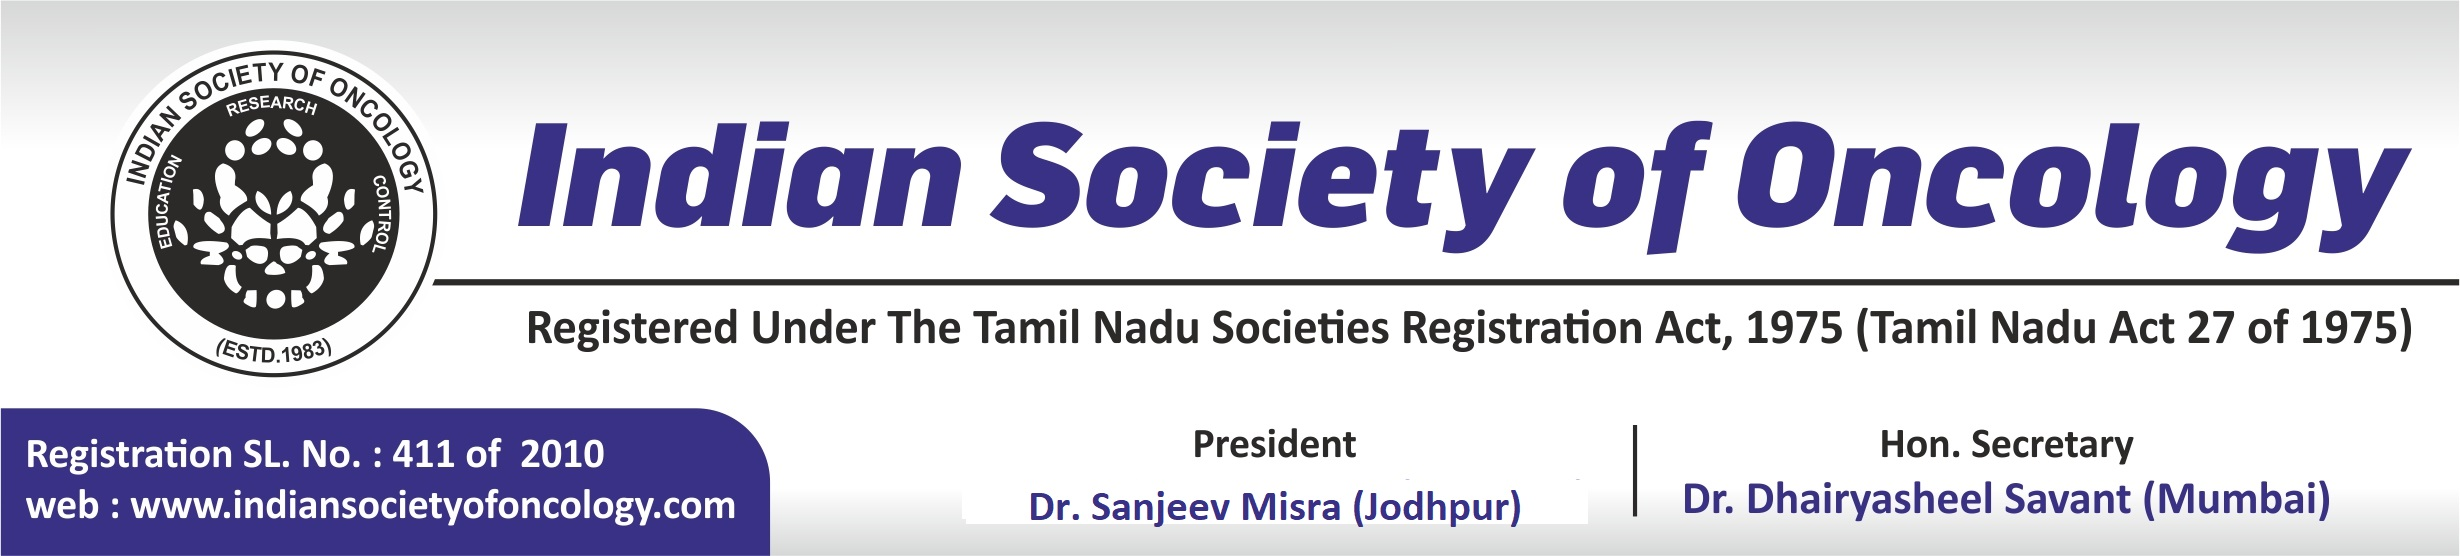 Indian Society of Oncology